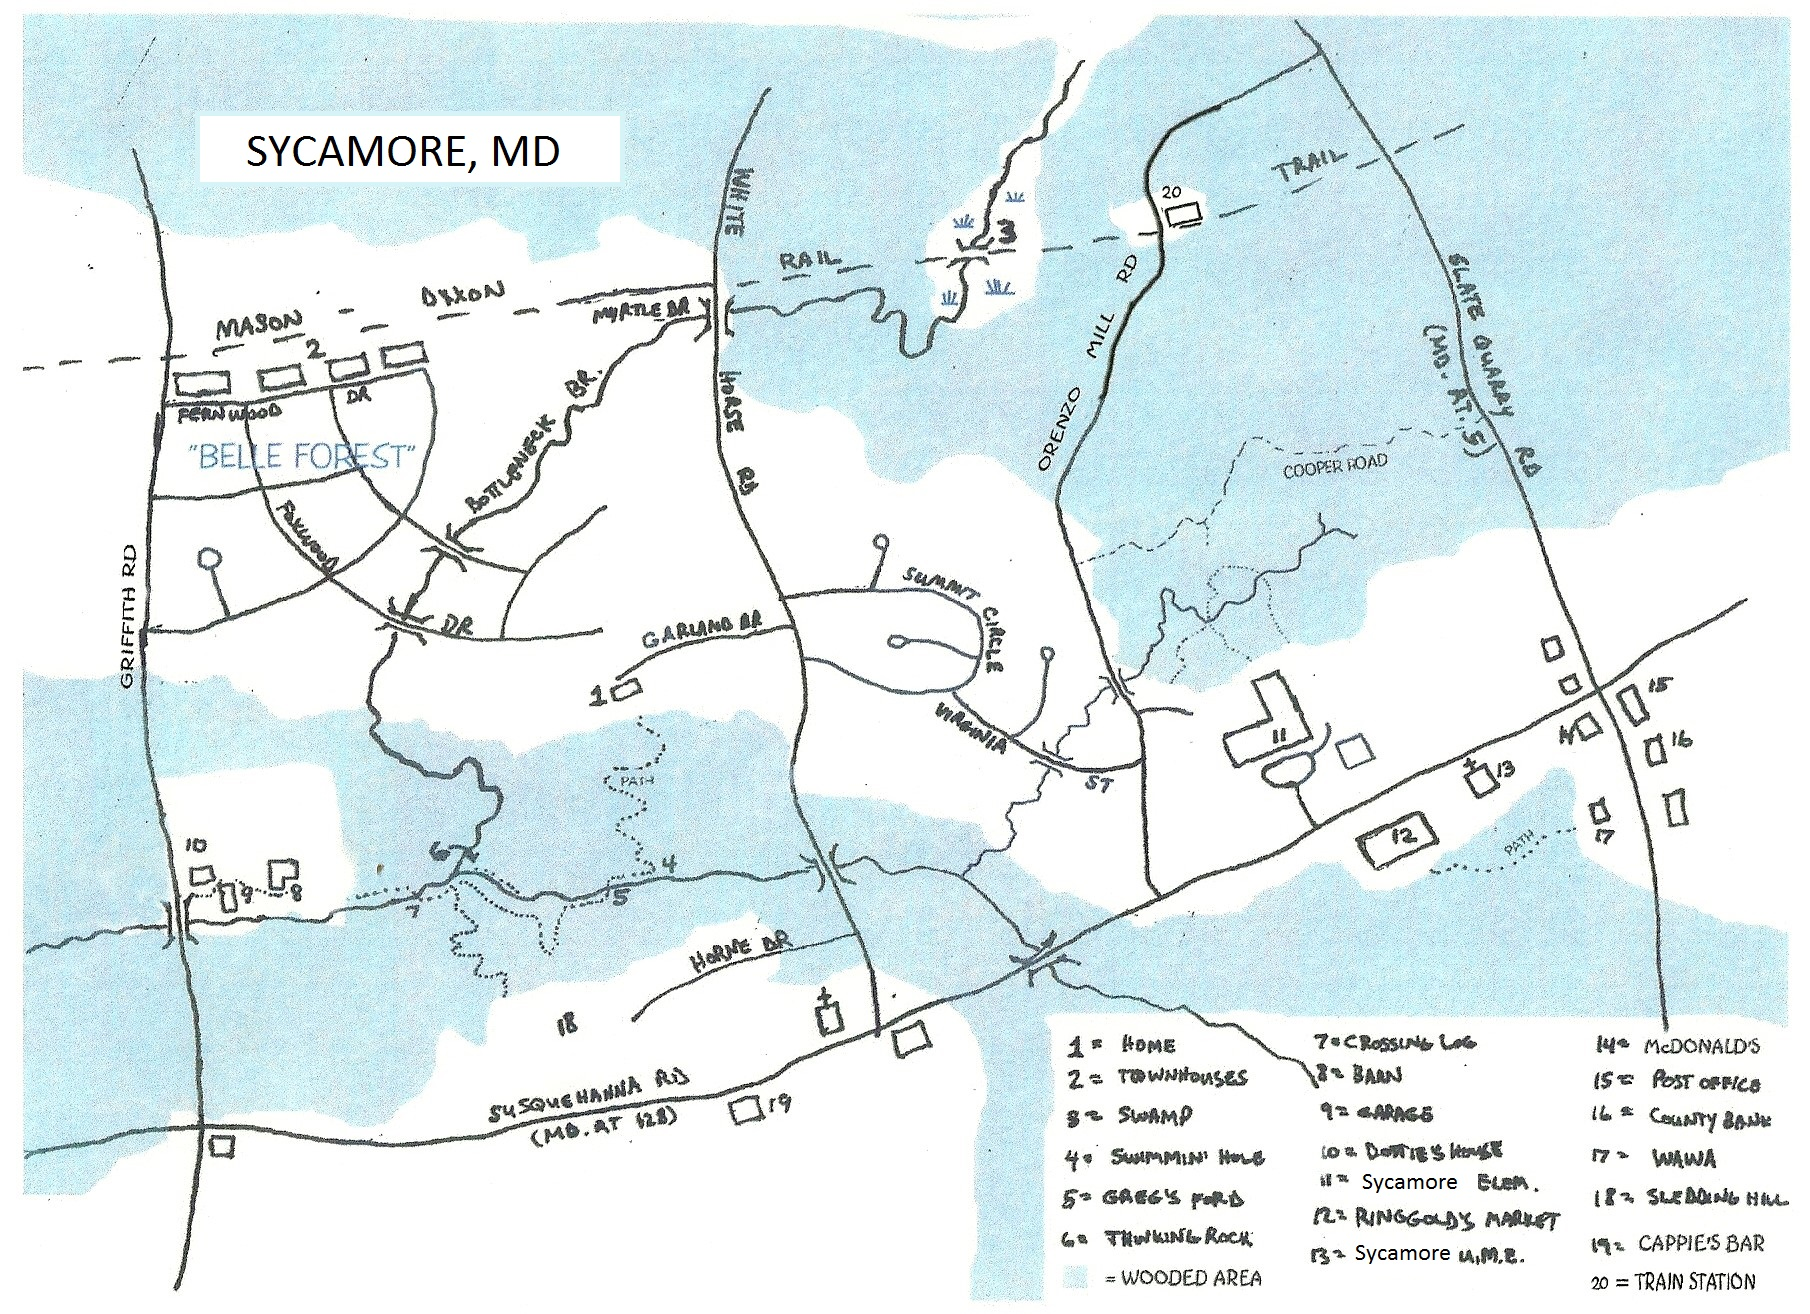 Map of Sycamore